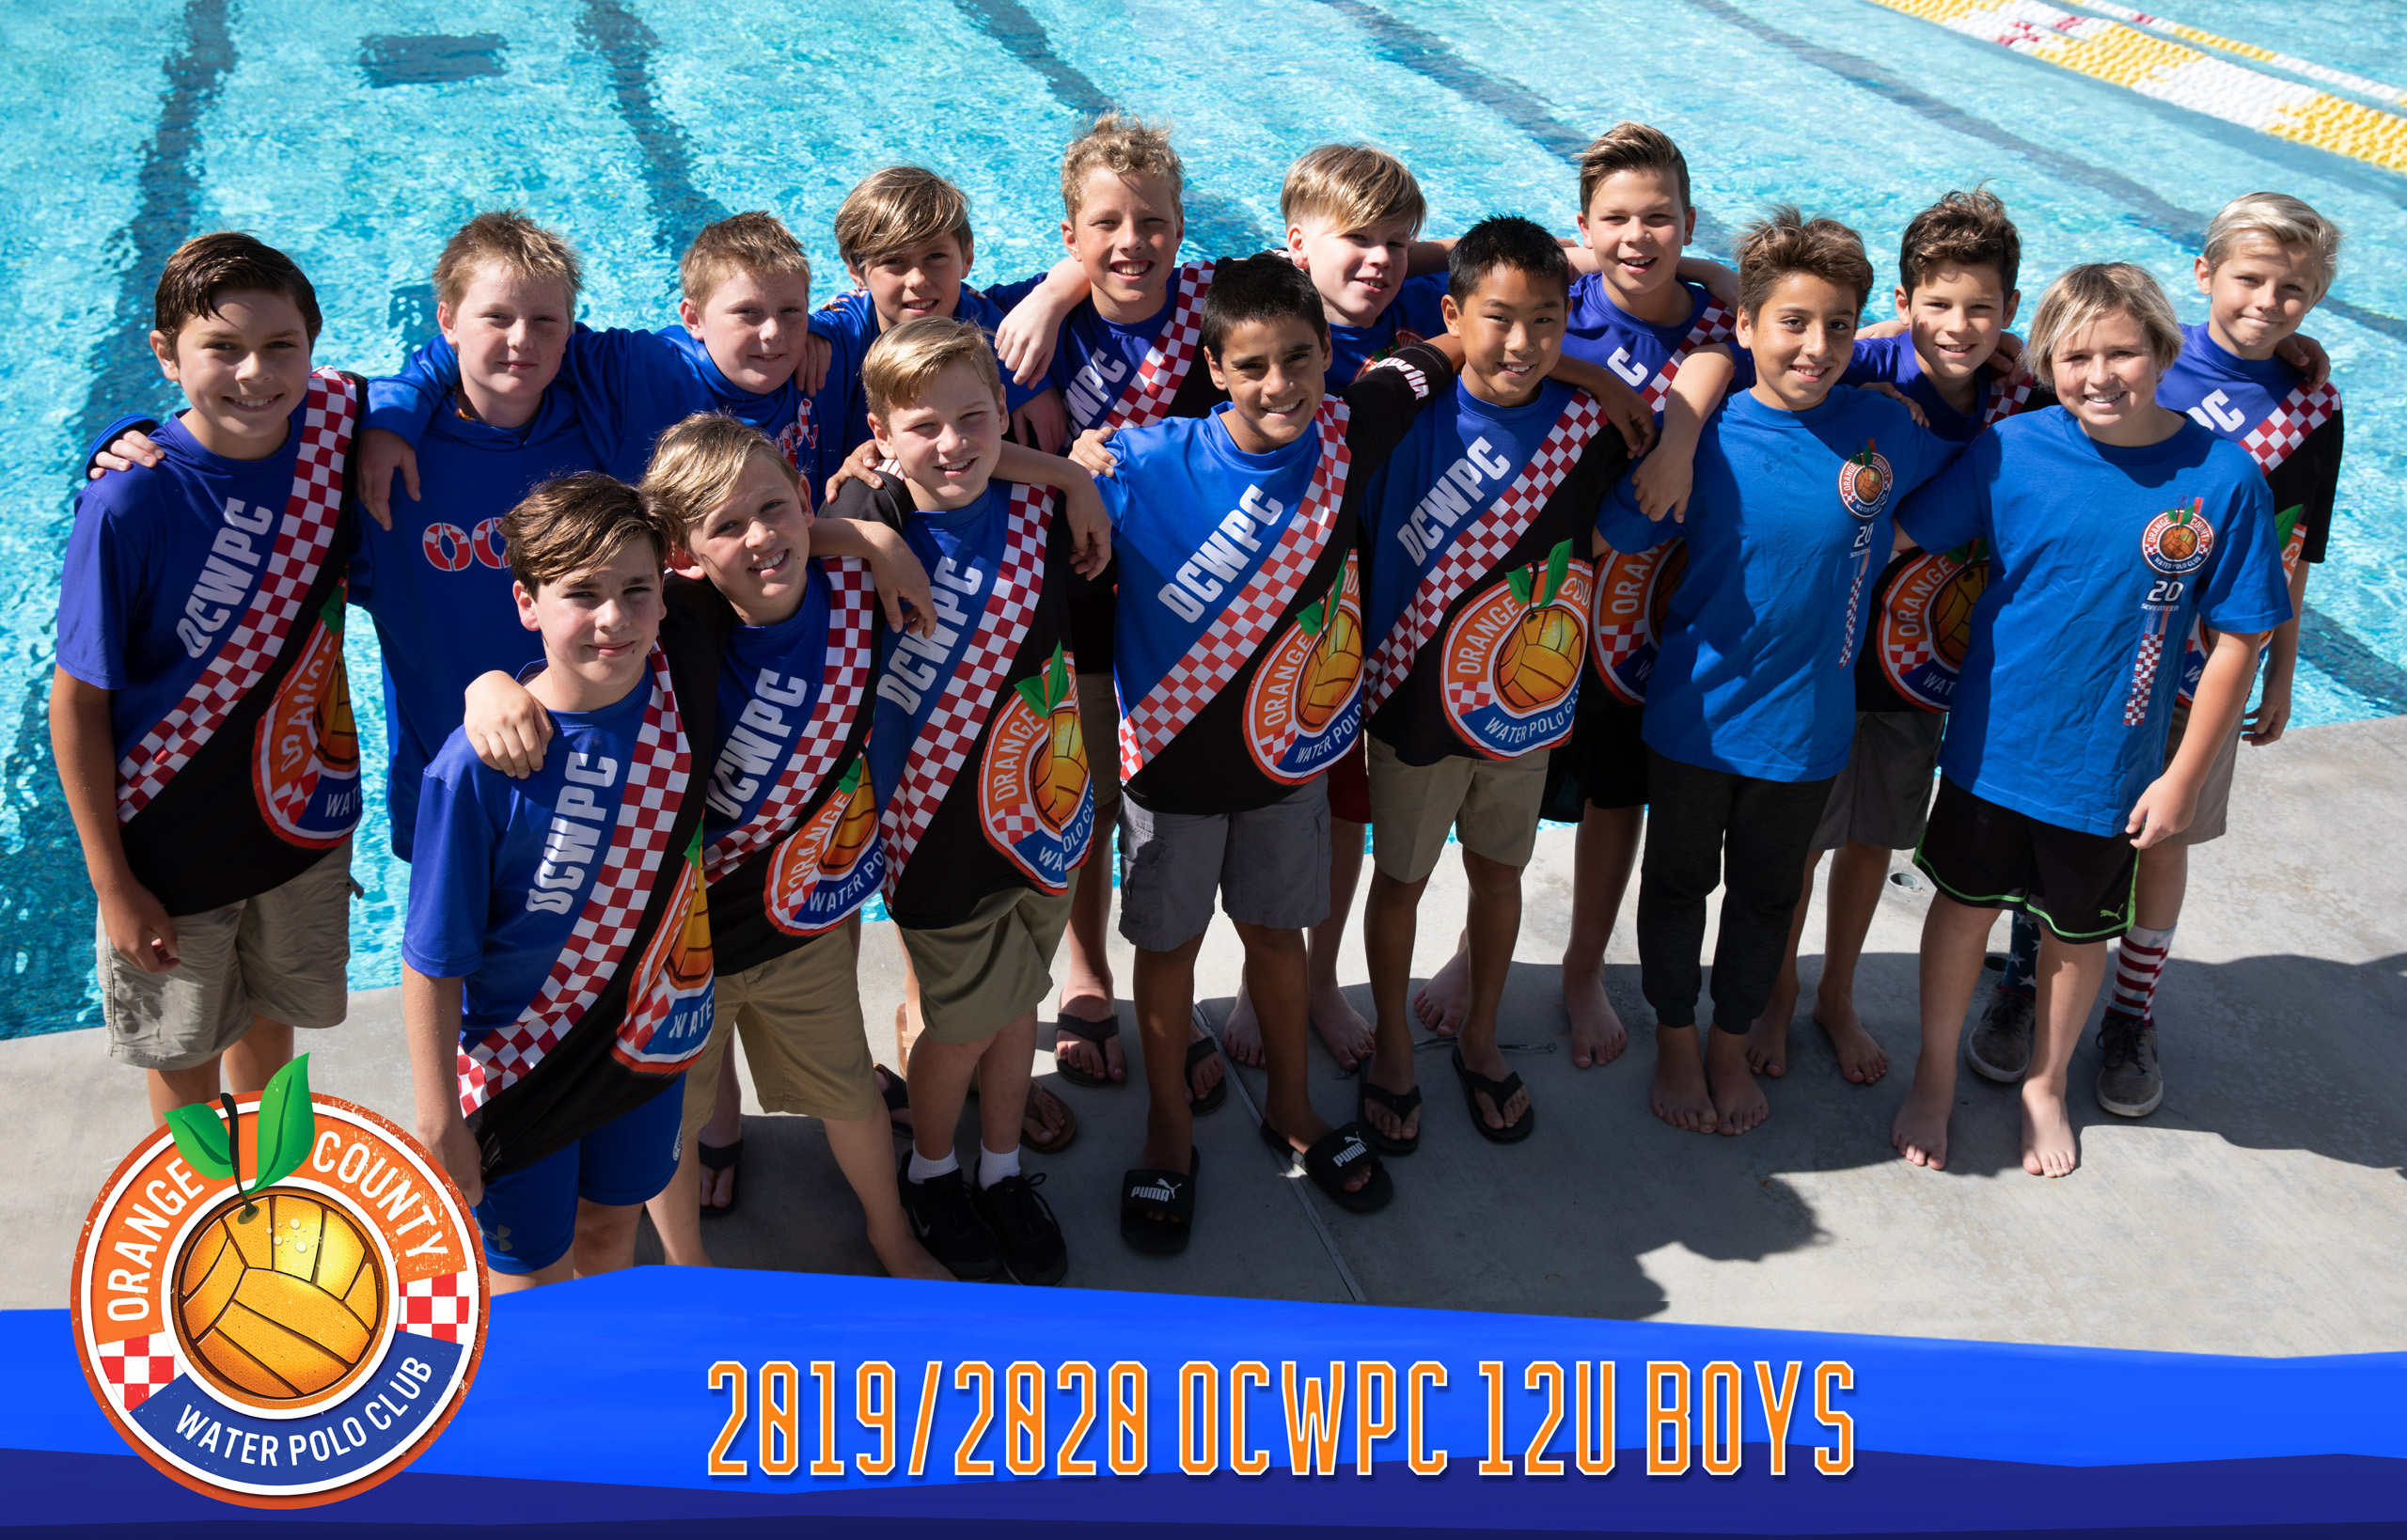 OCWPC-12U-Boys-Team-2020-02-29-John-Mairs_1-FINAL-MED